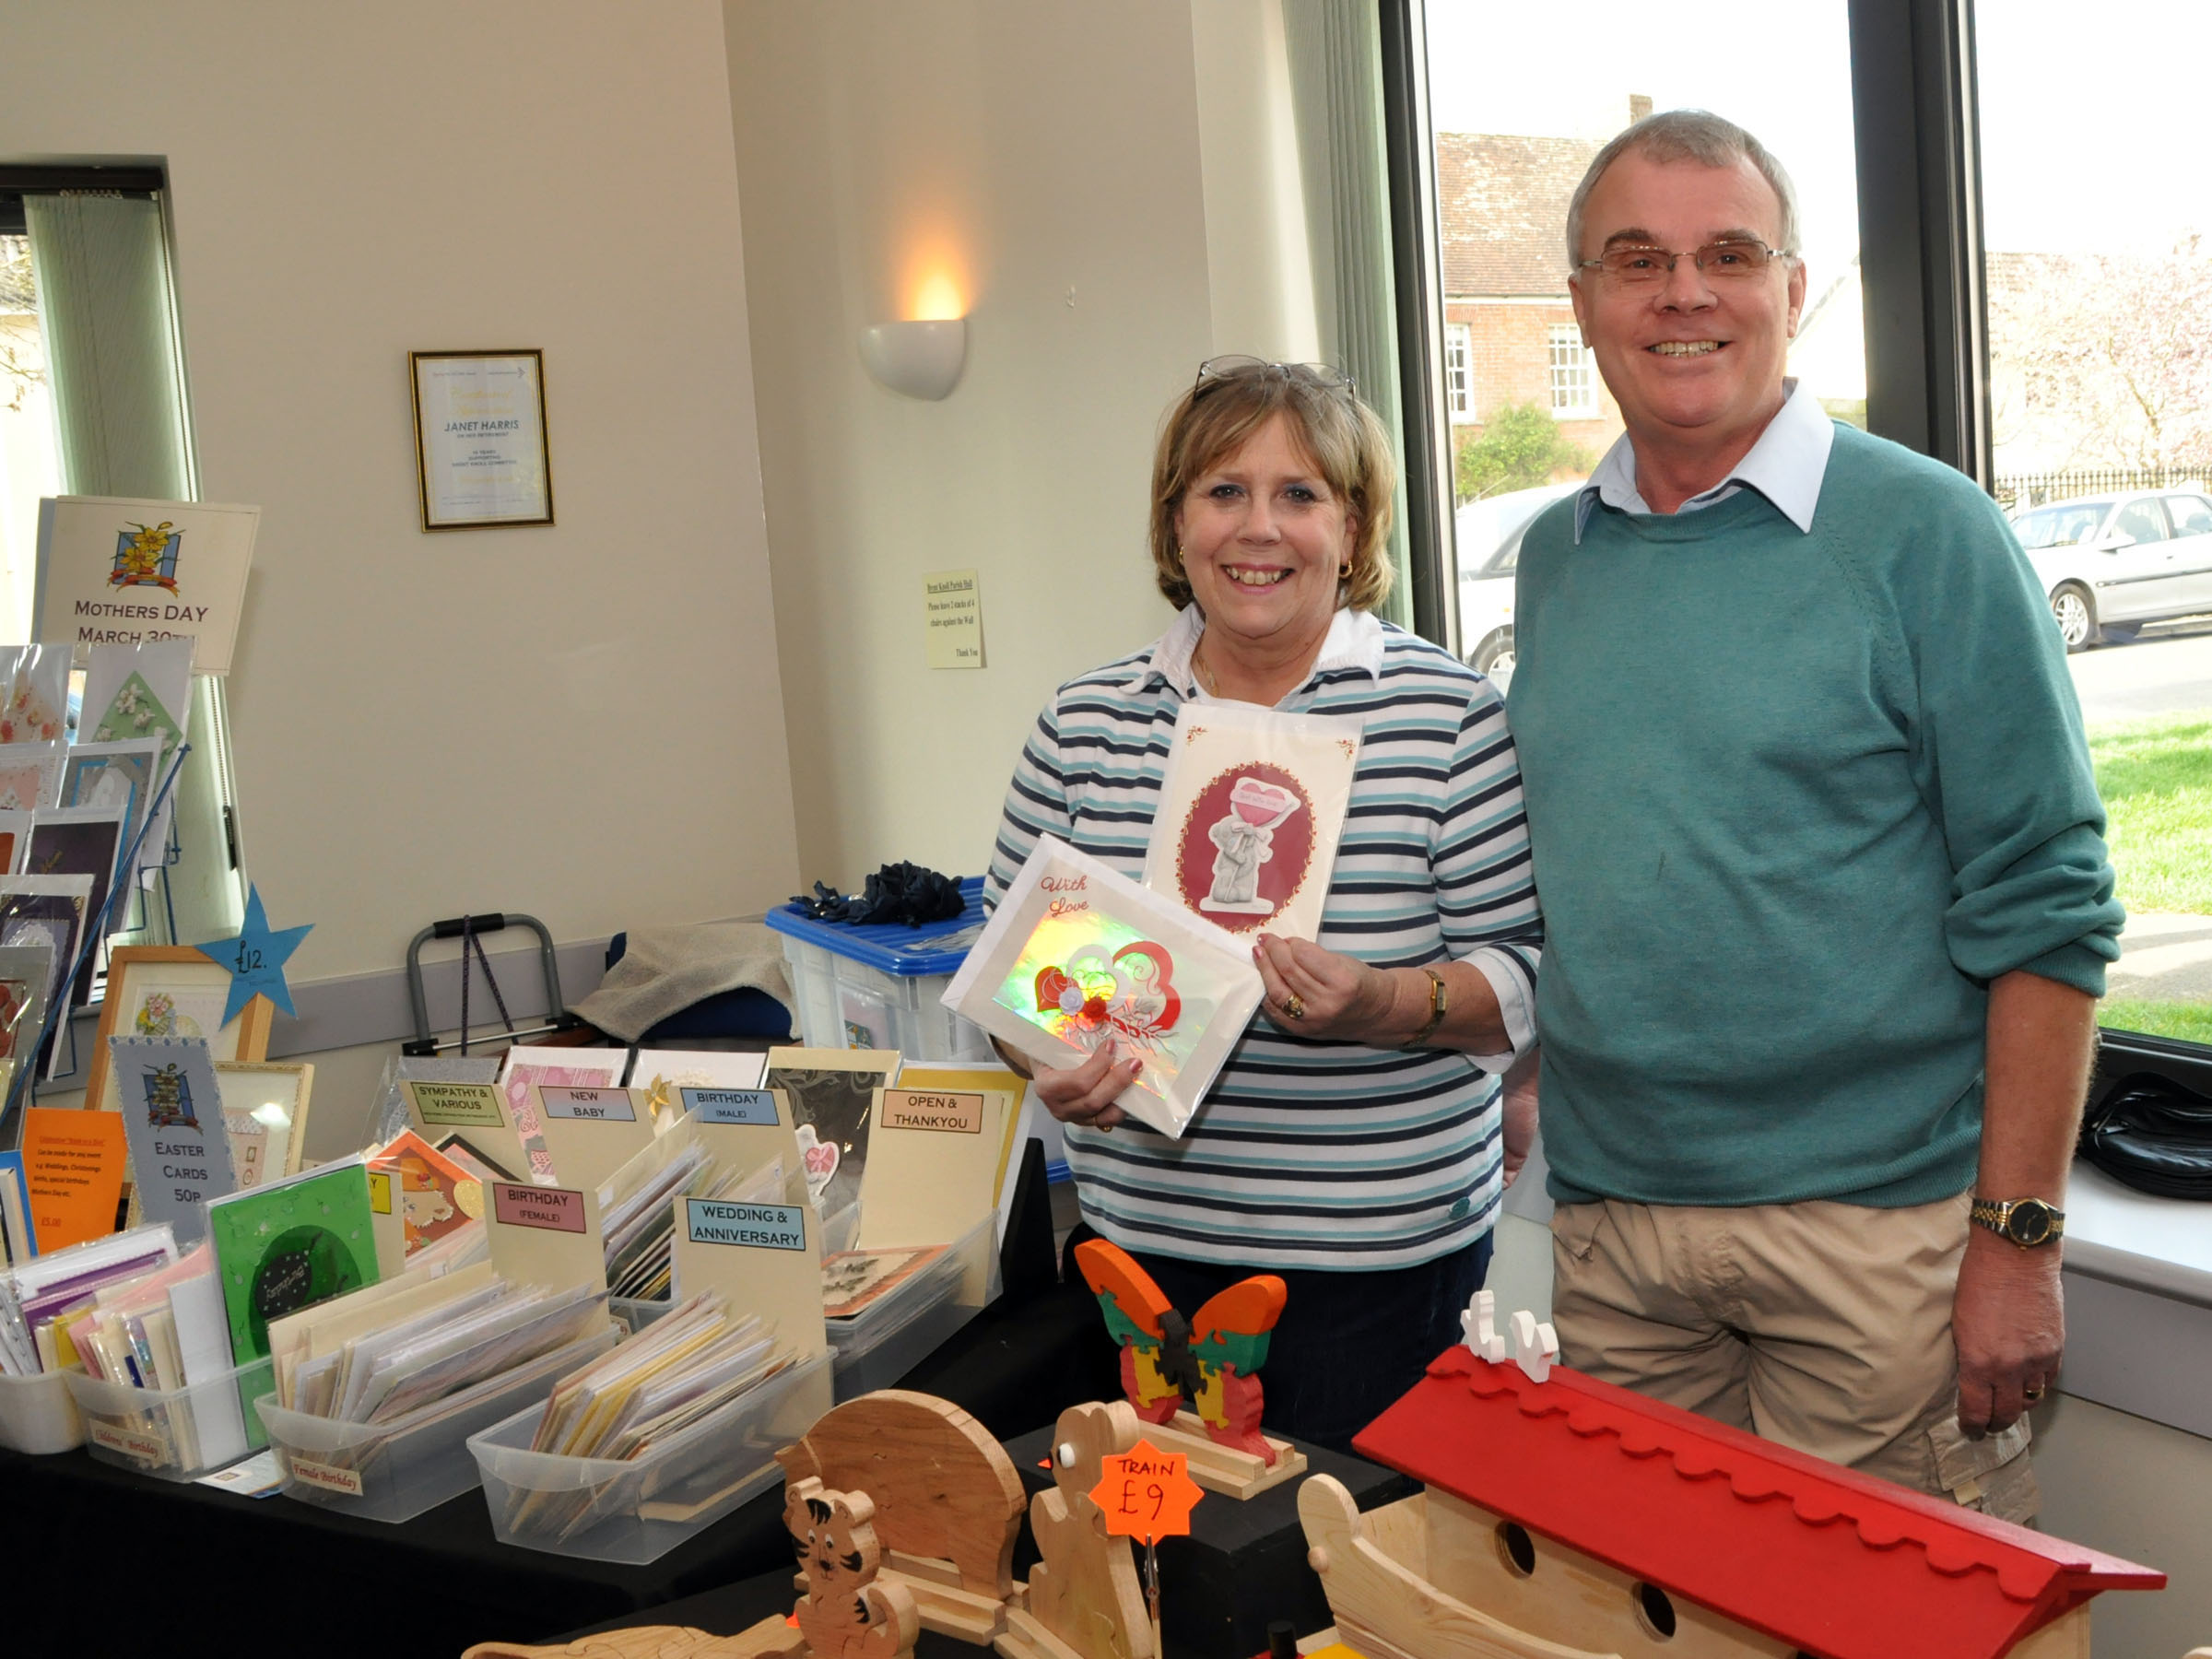 Shoppers enjoy selection at Brent Knoll bazaar